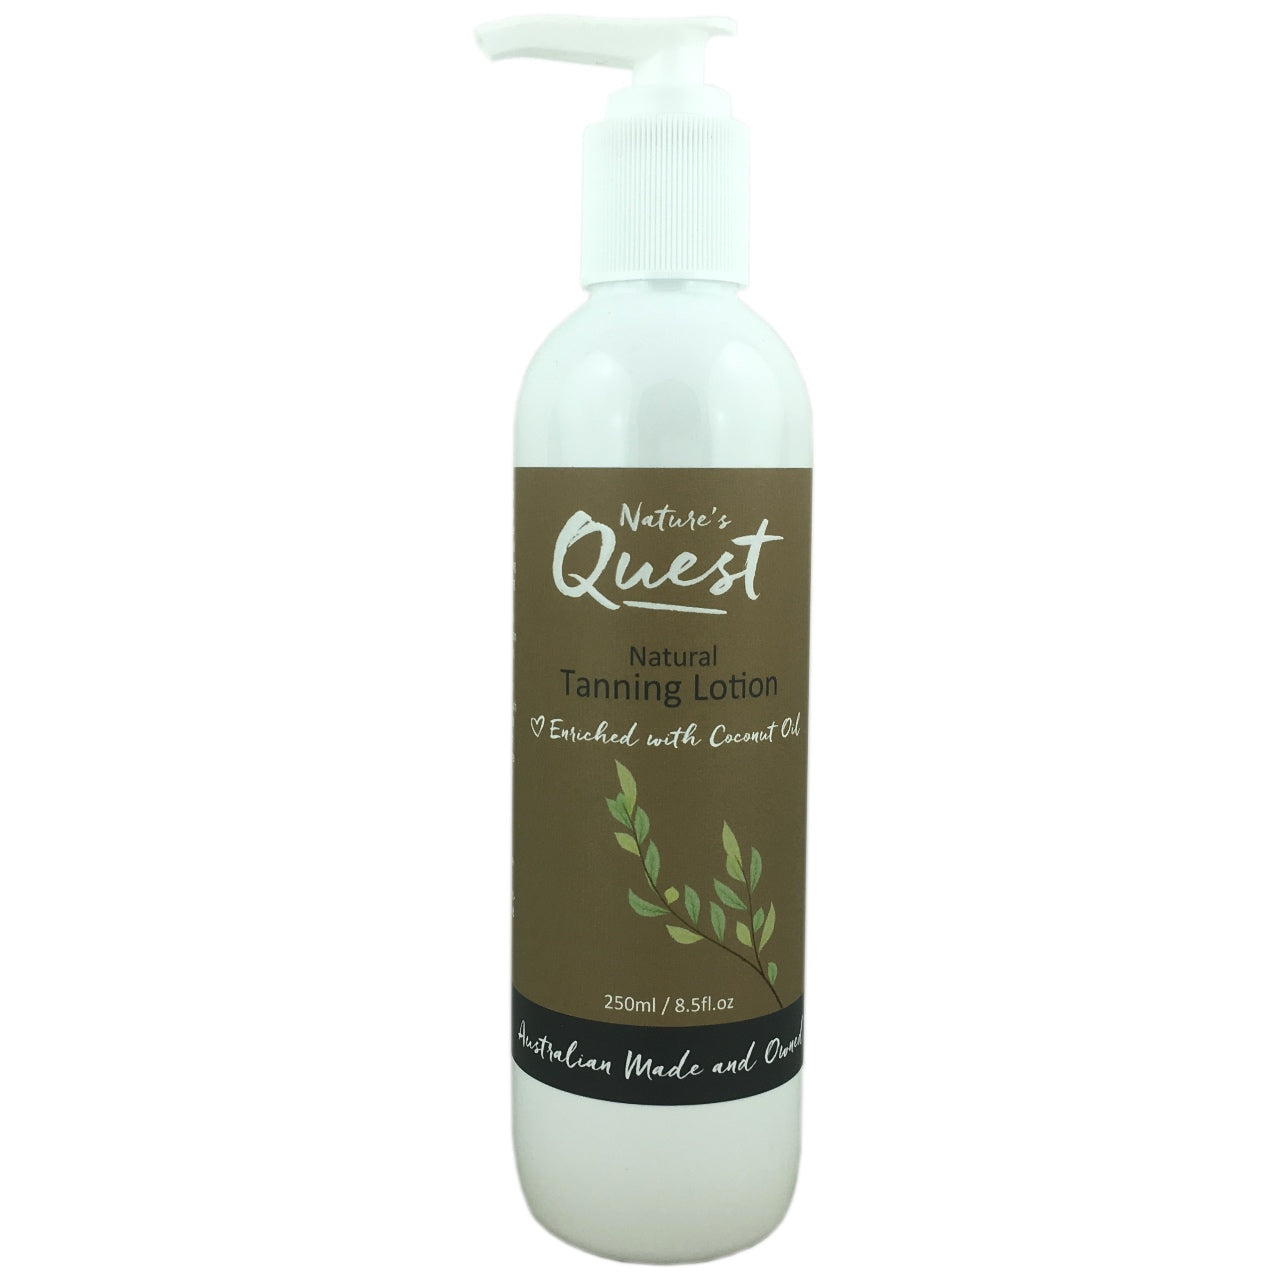 Nature's Quest Tanning Lotion